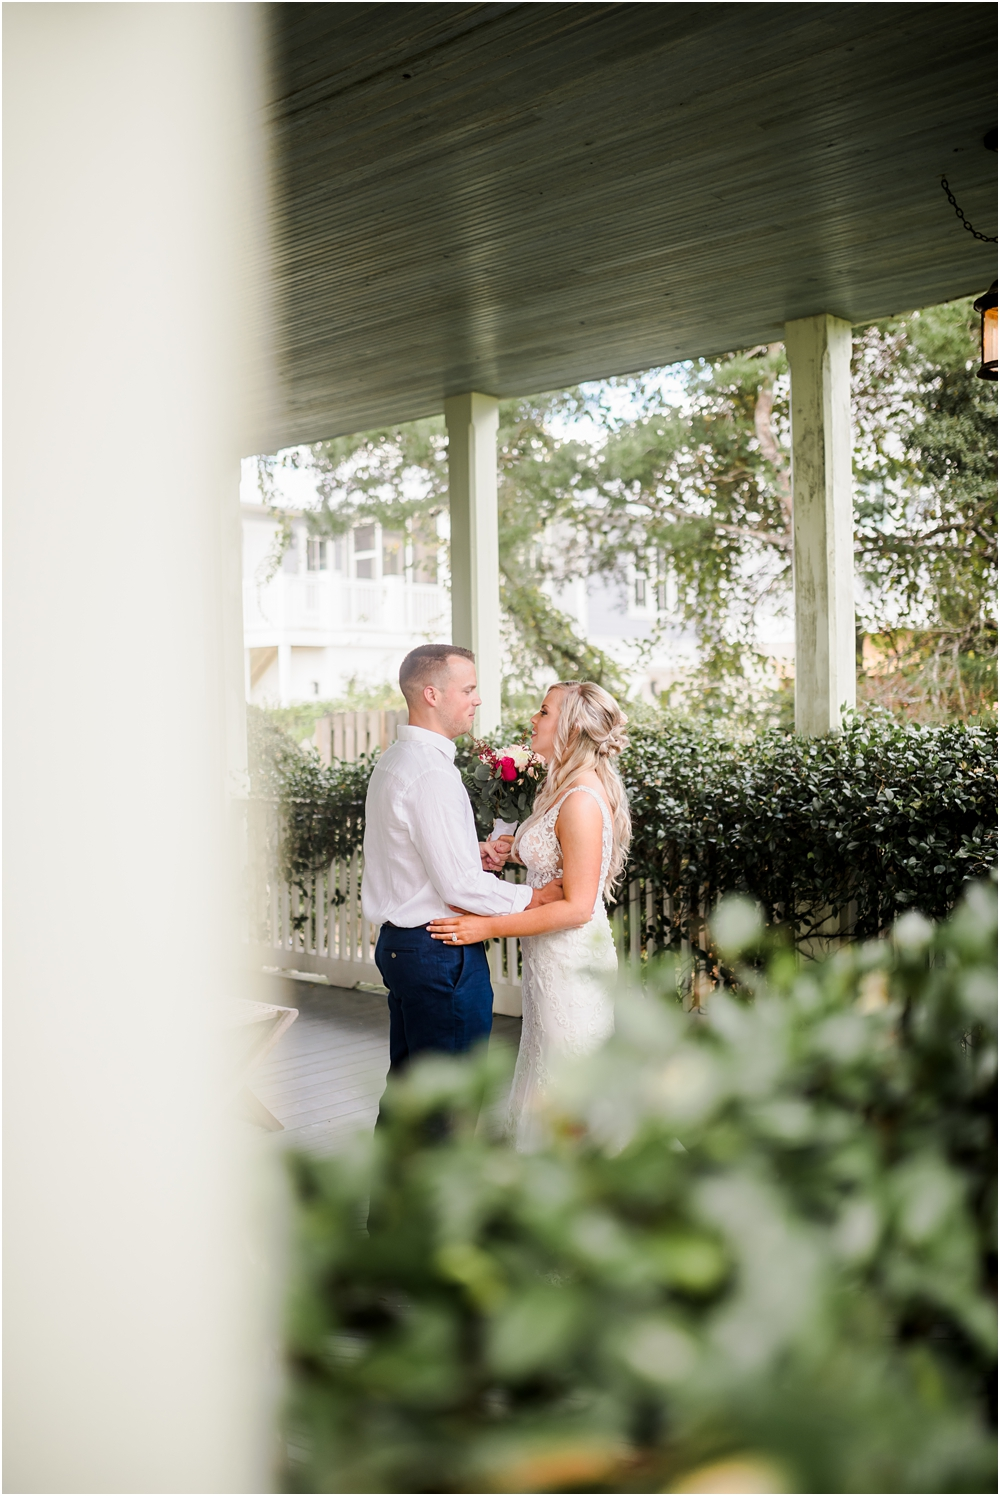 mcglothlin-wedding-kiersten-stevenson-photography-30a-panama-city-beach-dothan-tallahassee-(51-of-145).jpg